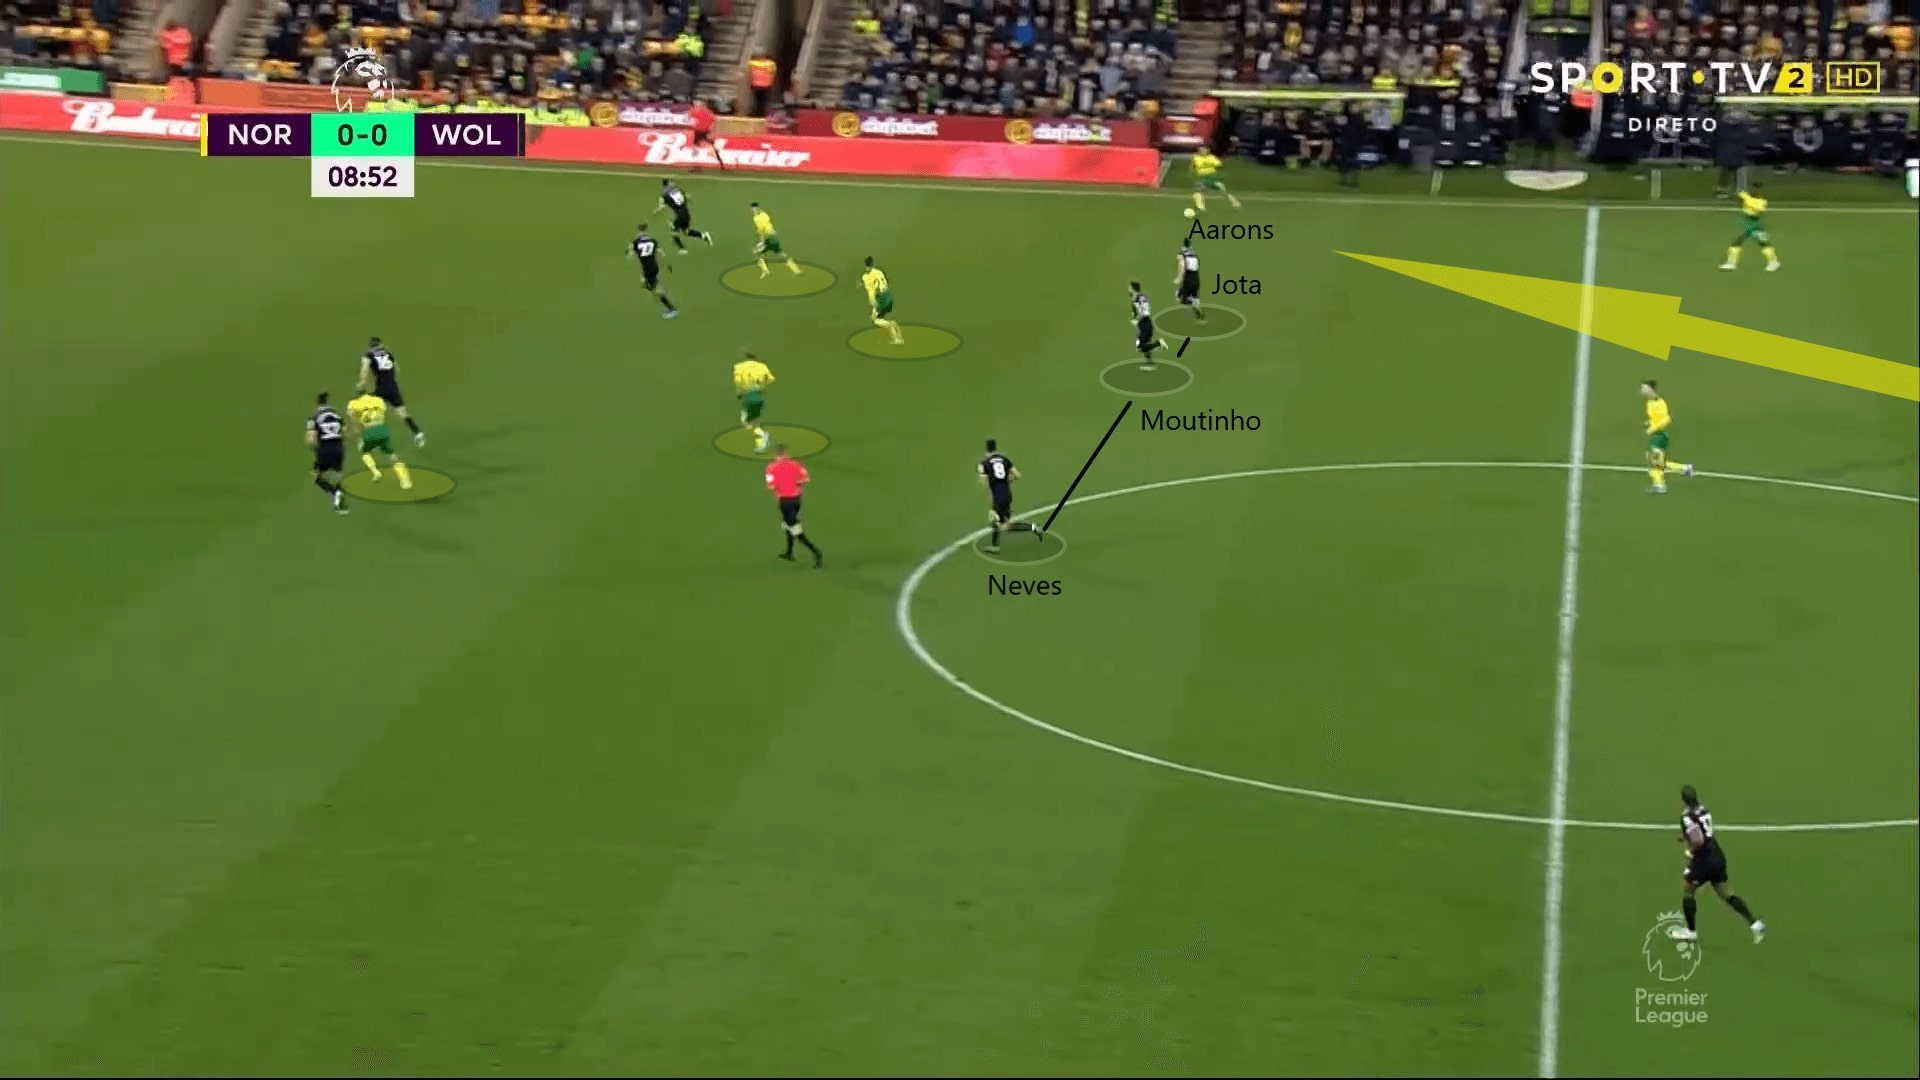 Premier League 2019/20: Norwich City vs Wolves - tactical analysis tactics